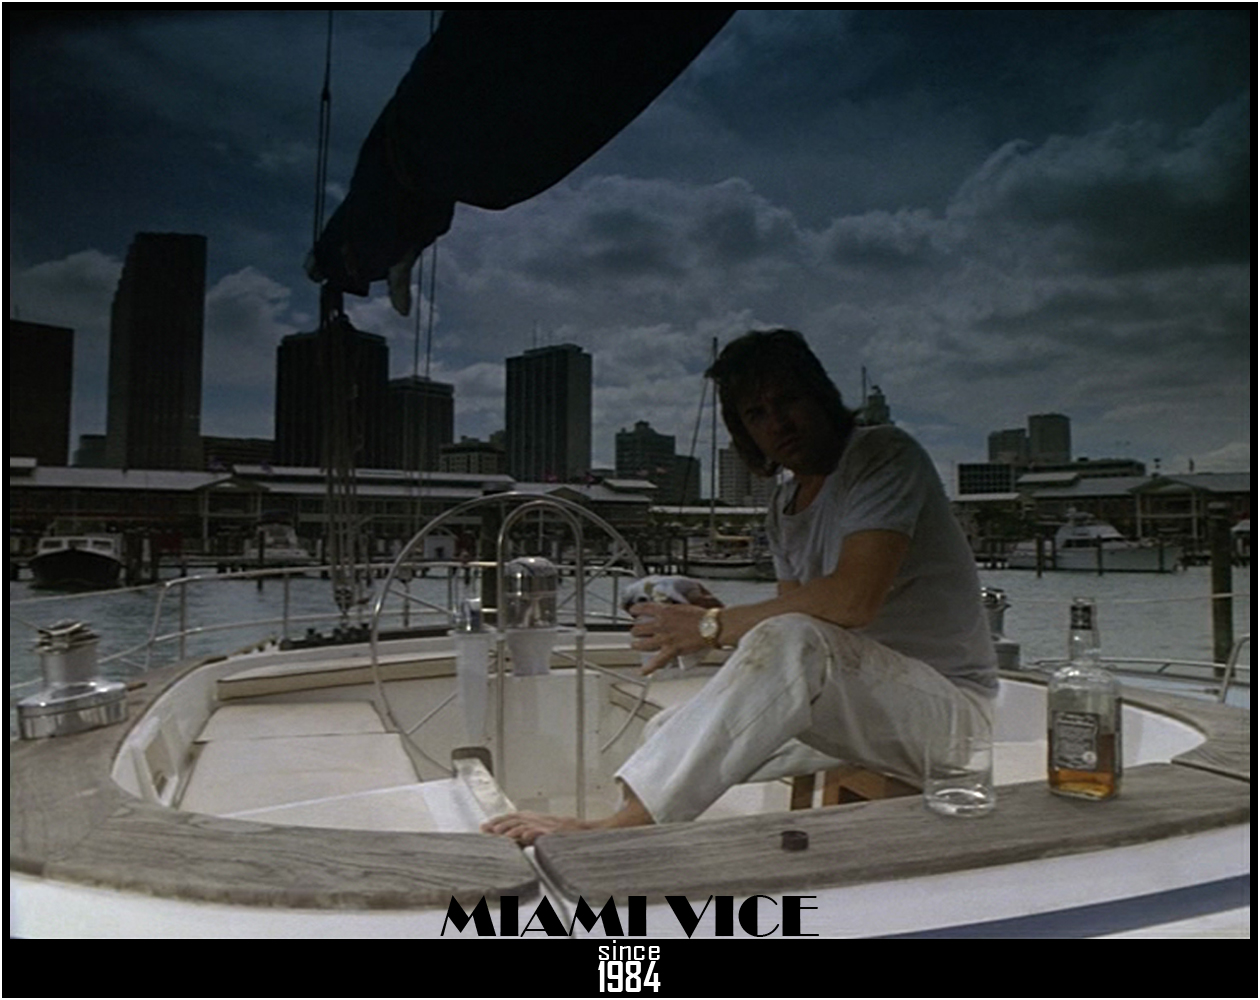 MIAMI VICE - Since 1984 - Sonny